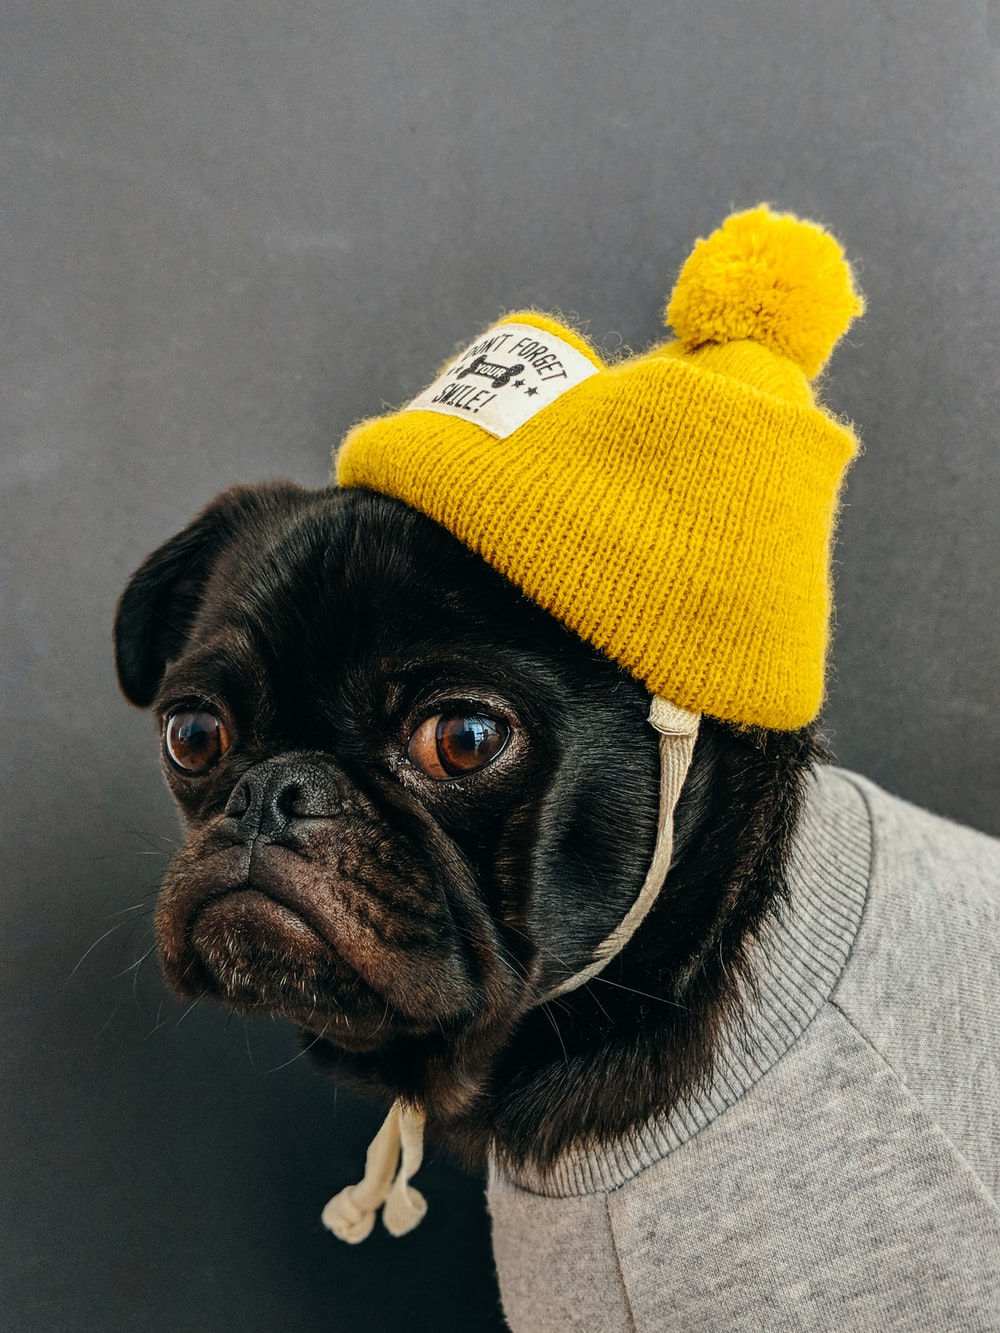 dog wearing shirt with hat